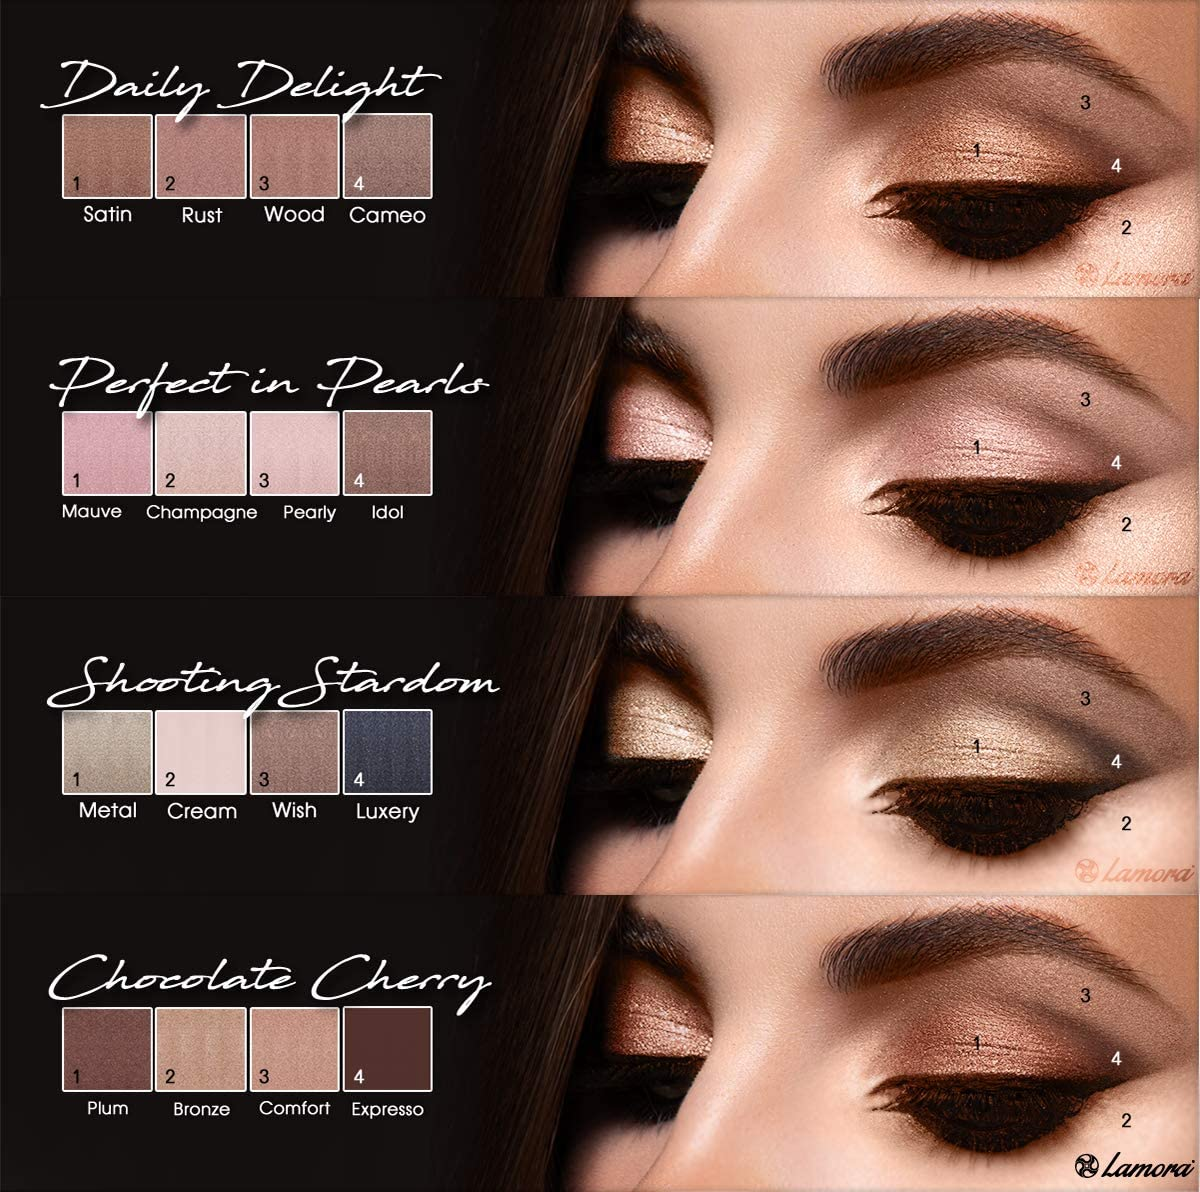 Many models will have a couple of different shades of eyeshadow to change them up easily. When it comes to fashion and makeup, your eyes are your crowning glory. Some of these models on several different makeup brands, but one of the most popular brands for women is the Estee Lauder Magic Makeup Art palette.